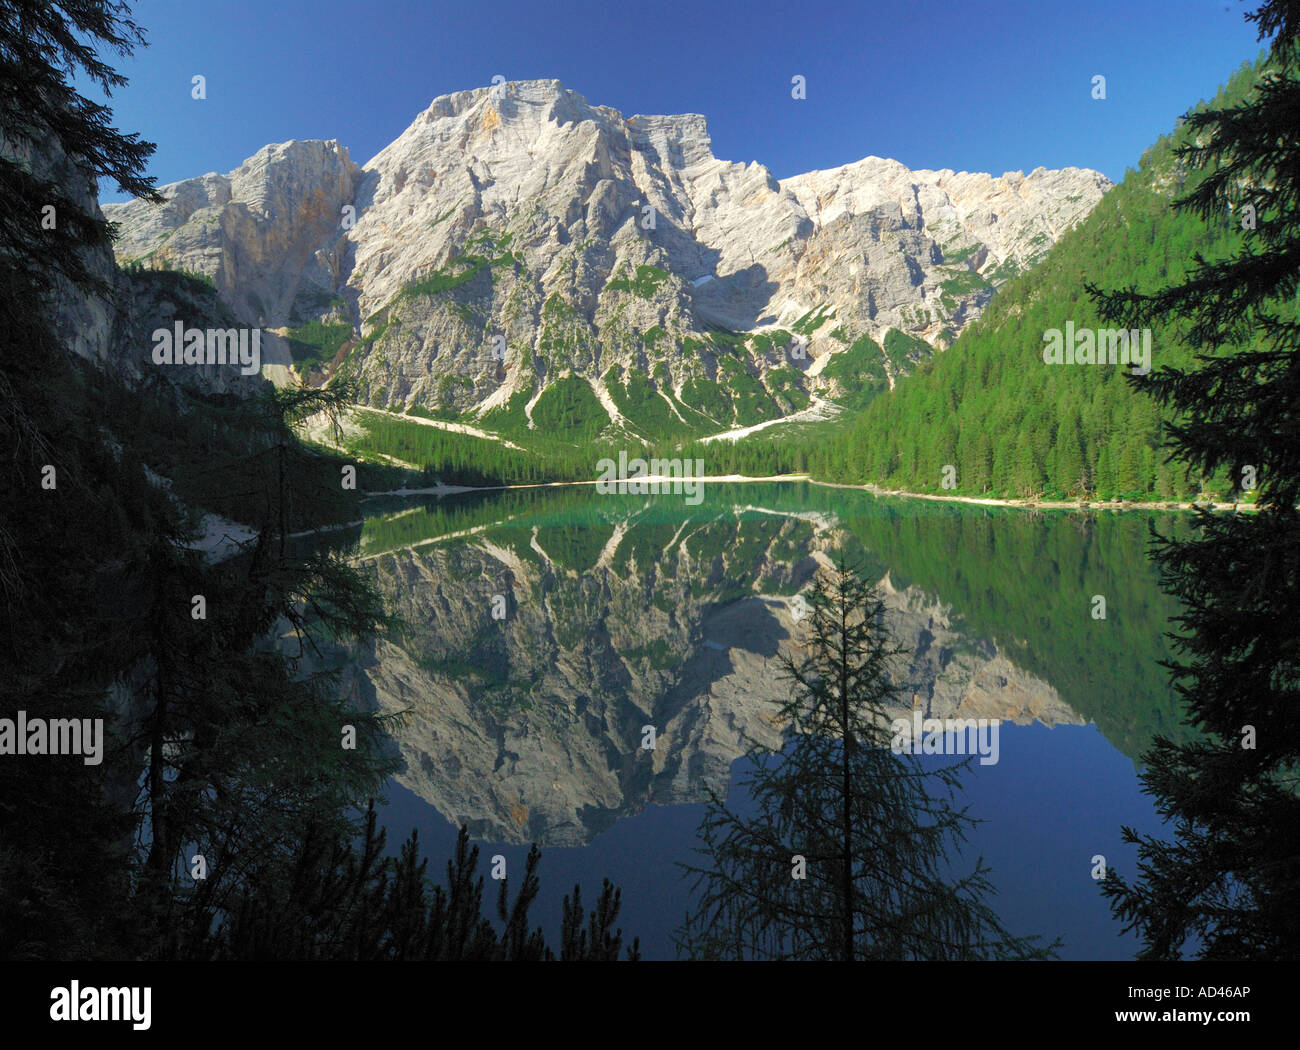 Pragser Wildsee Lago di Braies, Seekofel Croda di Brecco, Pustertal, South Tyrol, Italy Stock Photo